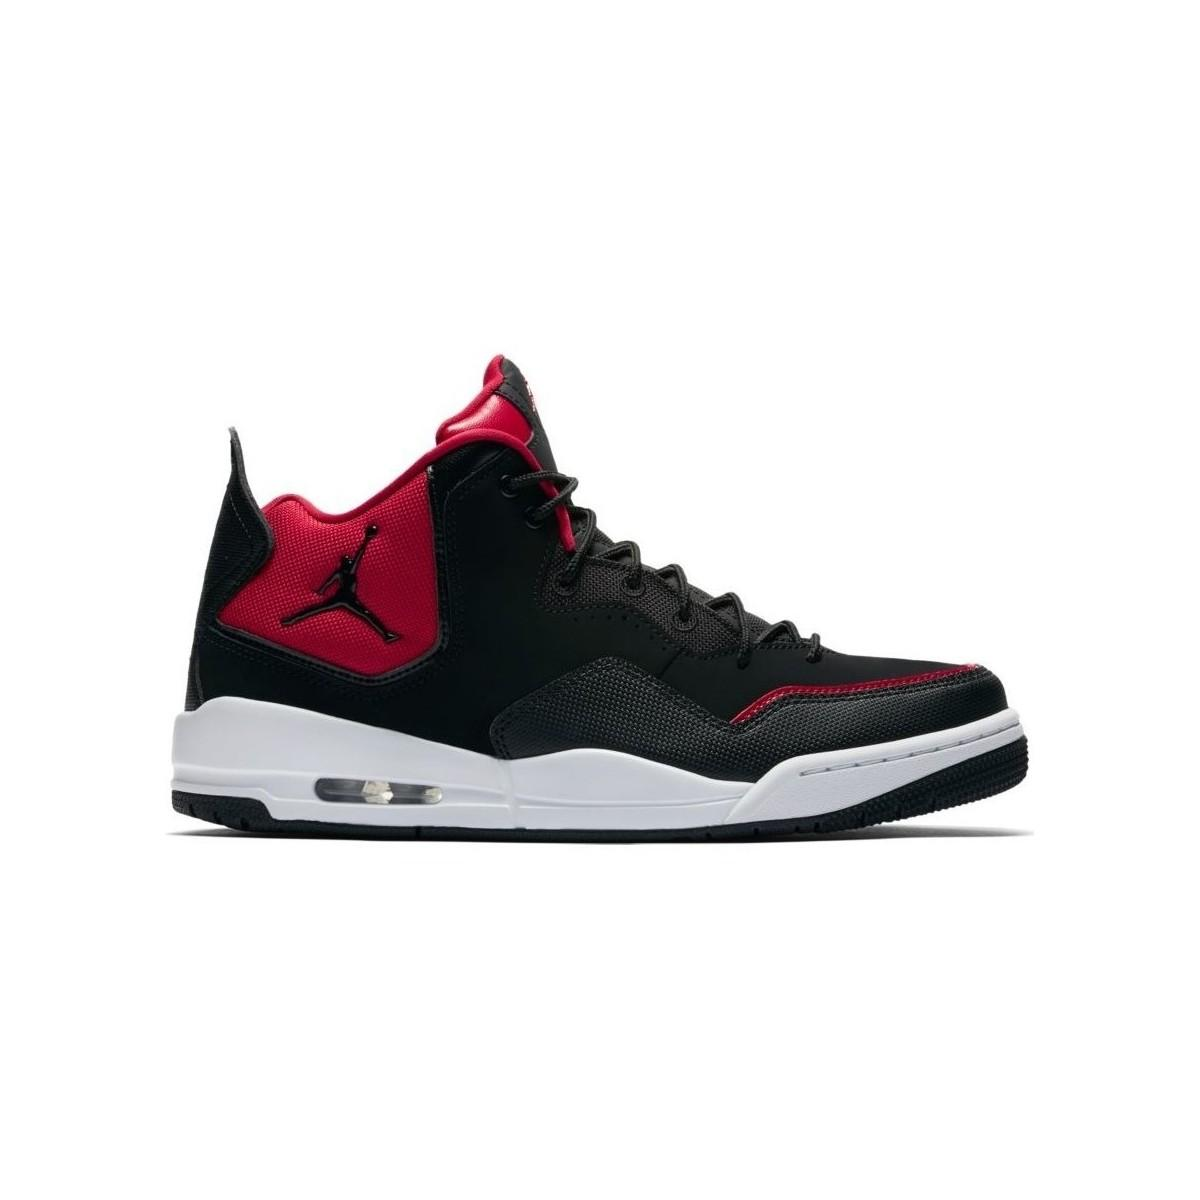 3004adece04 Nike Air Jordan Courtside 23 Men's Shoes (high-top Trainers) In ...